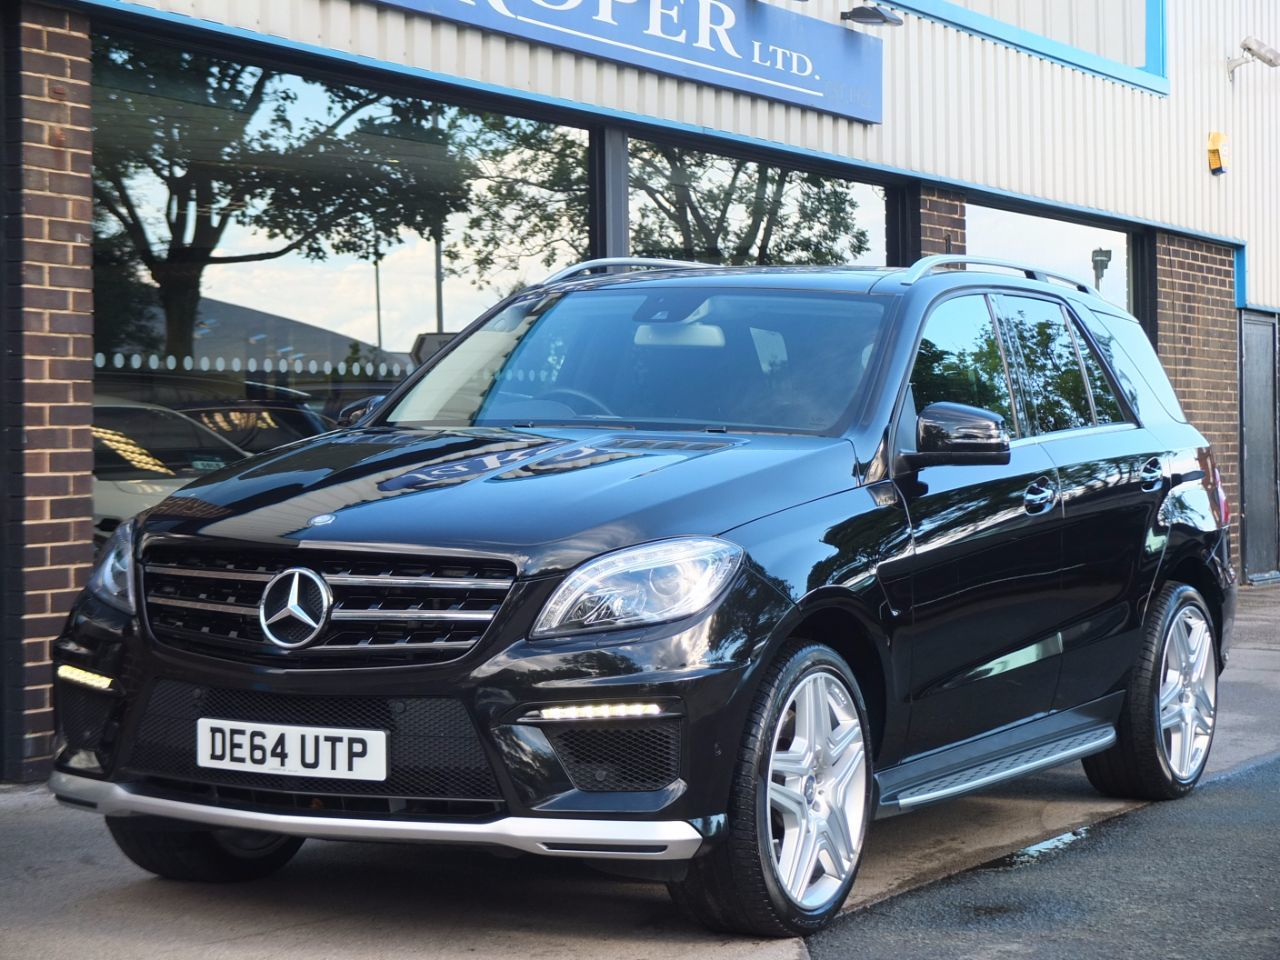 Mercedes-Benz M Class 5.5 ML63 AMG Premium Auto Estate Petrol Obsidian Black MetallicMercedes-Benz M Class 5.5 ML63 AMG Premium Auto Estate Petrol Obsidian Black Metallic at fa Roper Ltd Bradford